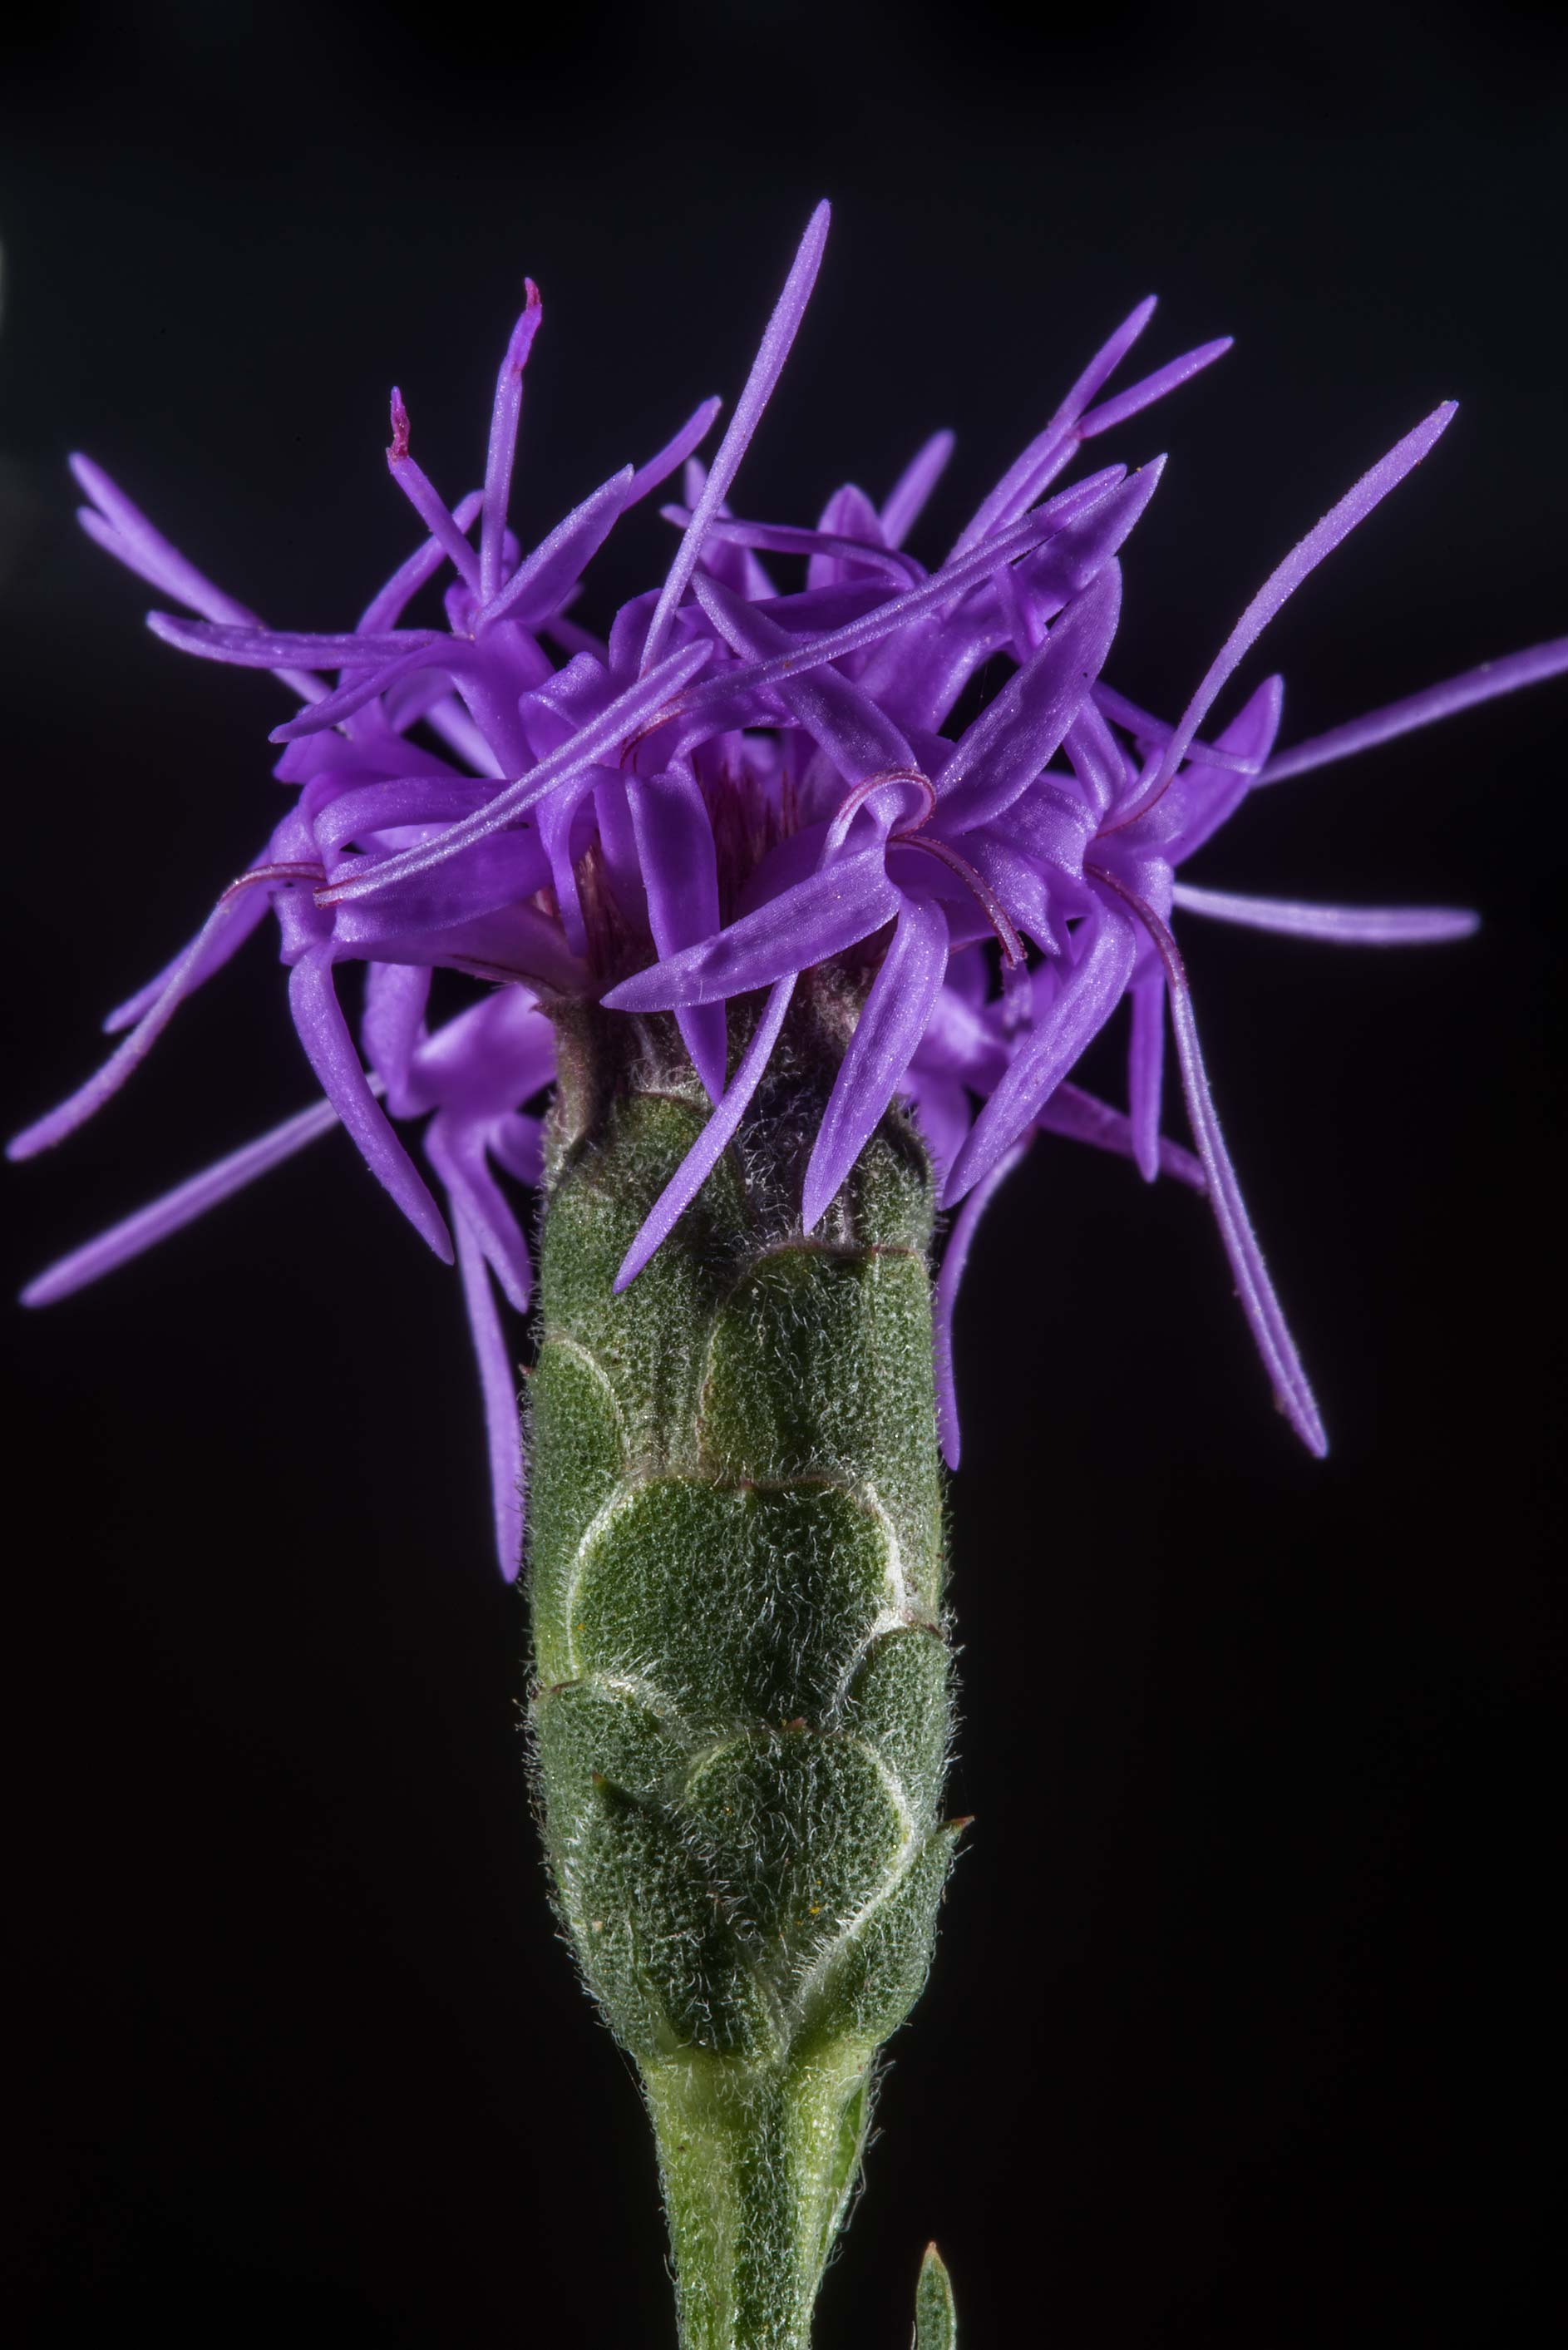 Flower of branched blazing star (Aggie-land...Ashburn St.. College Station, Texas